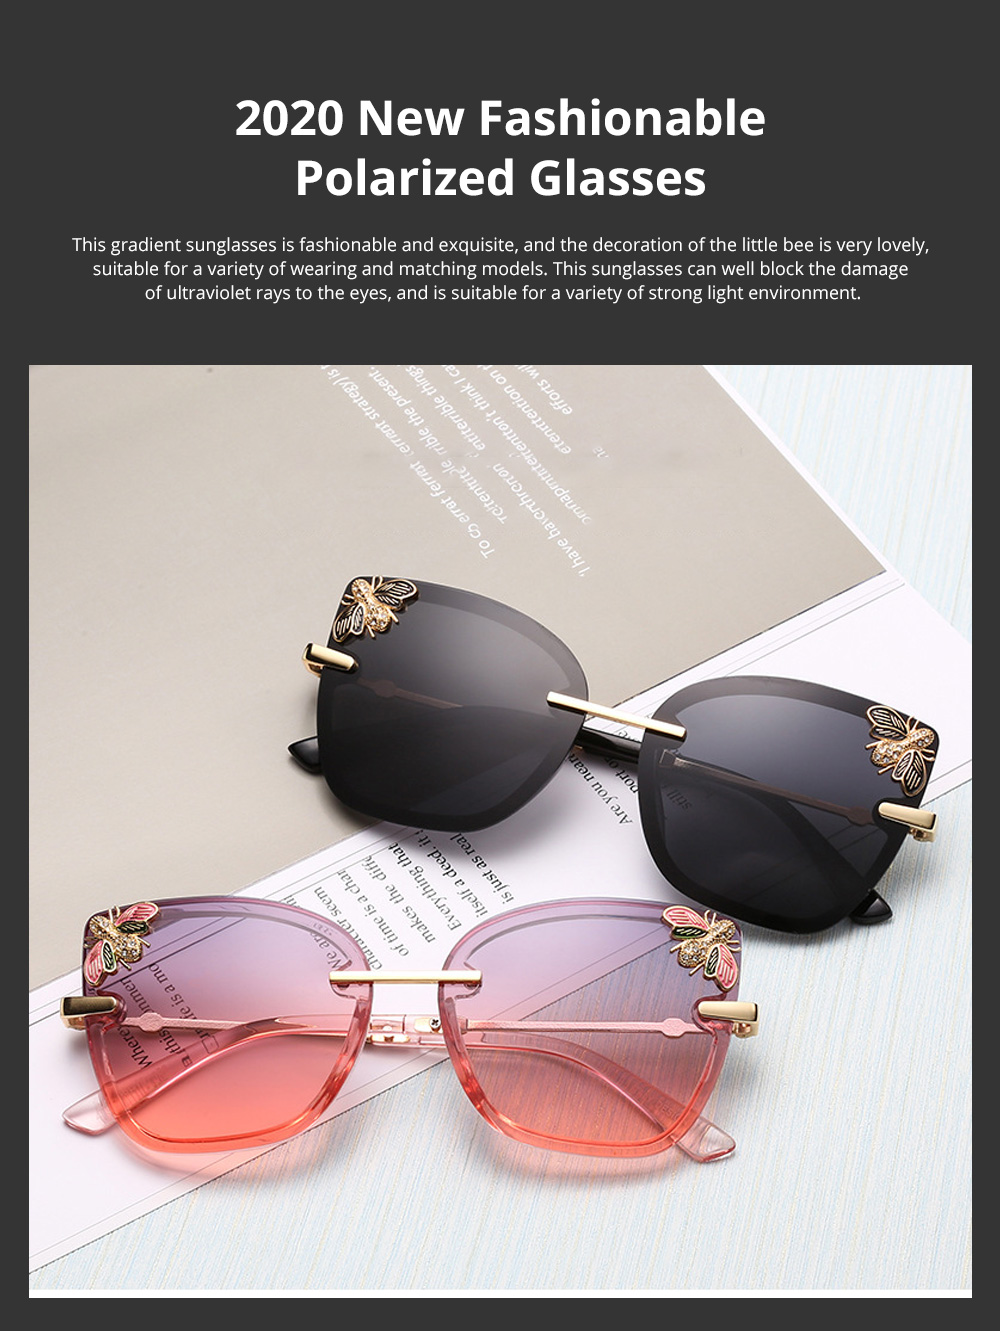 2020 New Fashionable Polarized Glasses Sunglasses for Women's Drivers Gradient Sunglasses 0